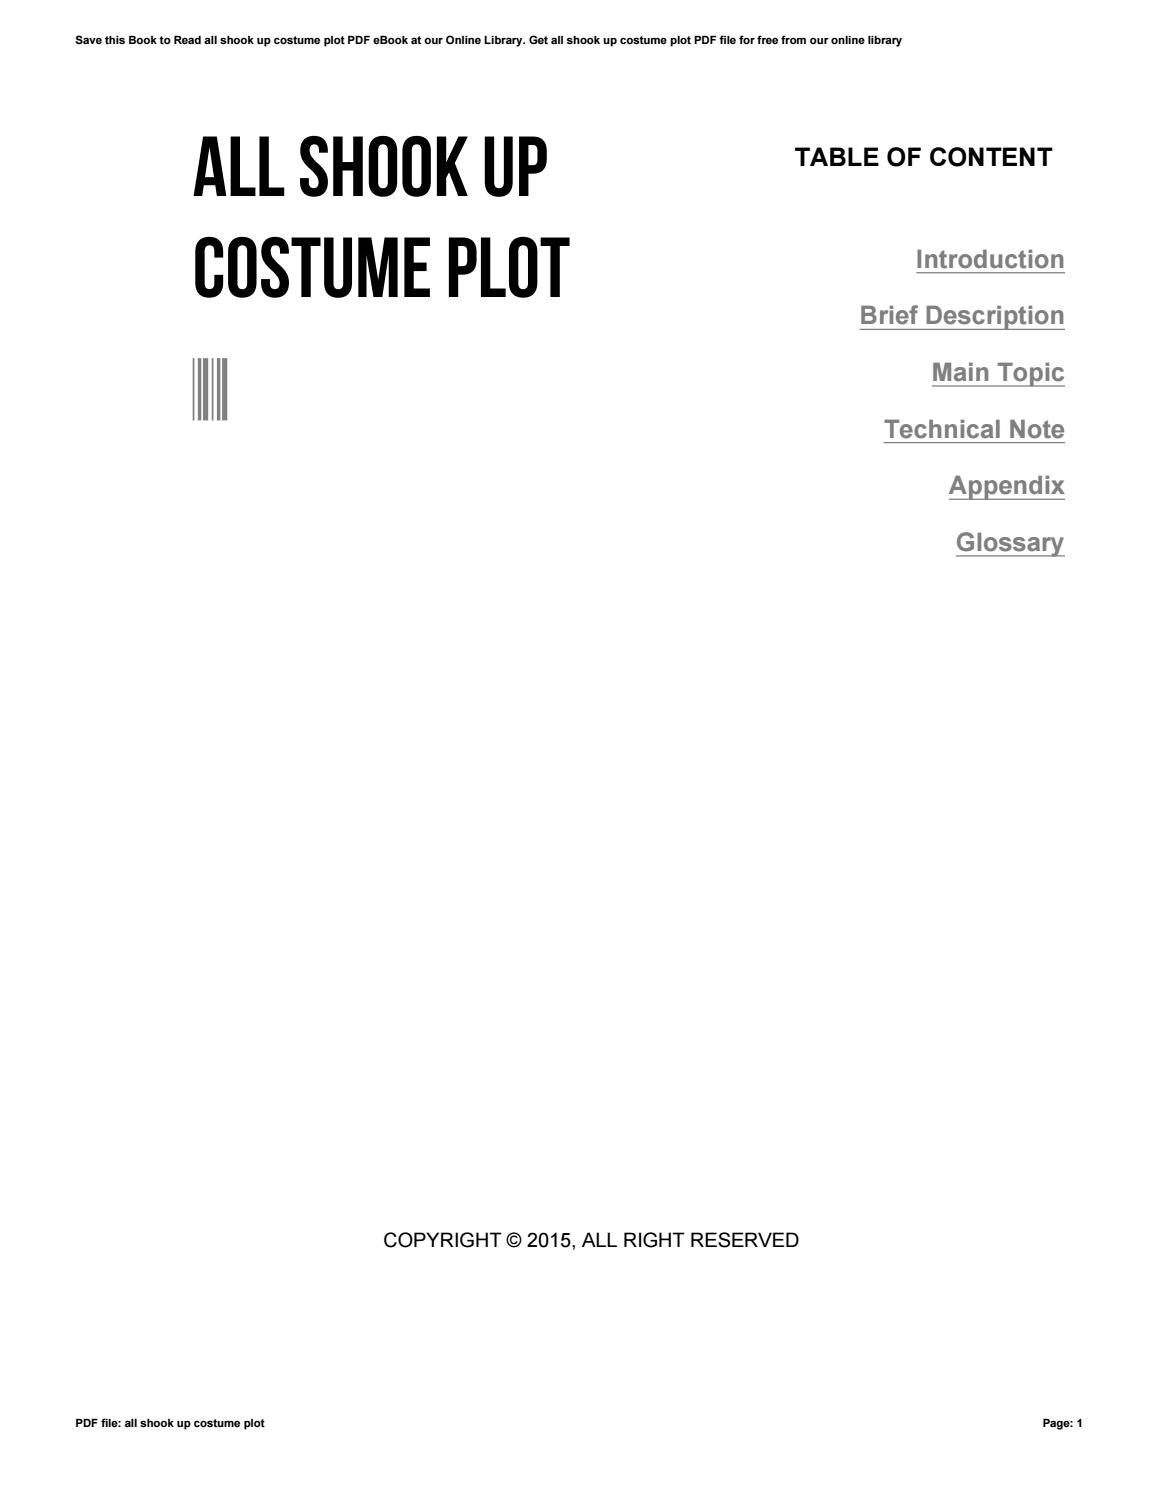 All shook up costume plot by as911 - issuu